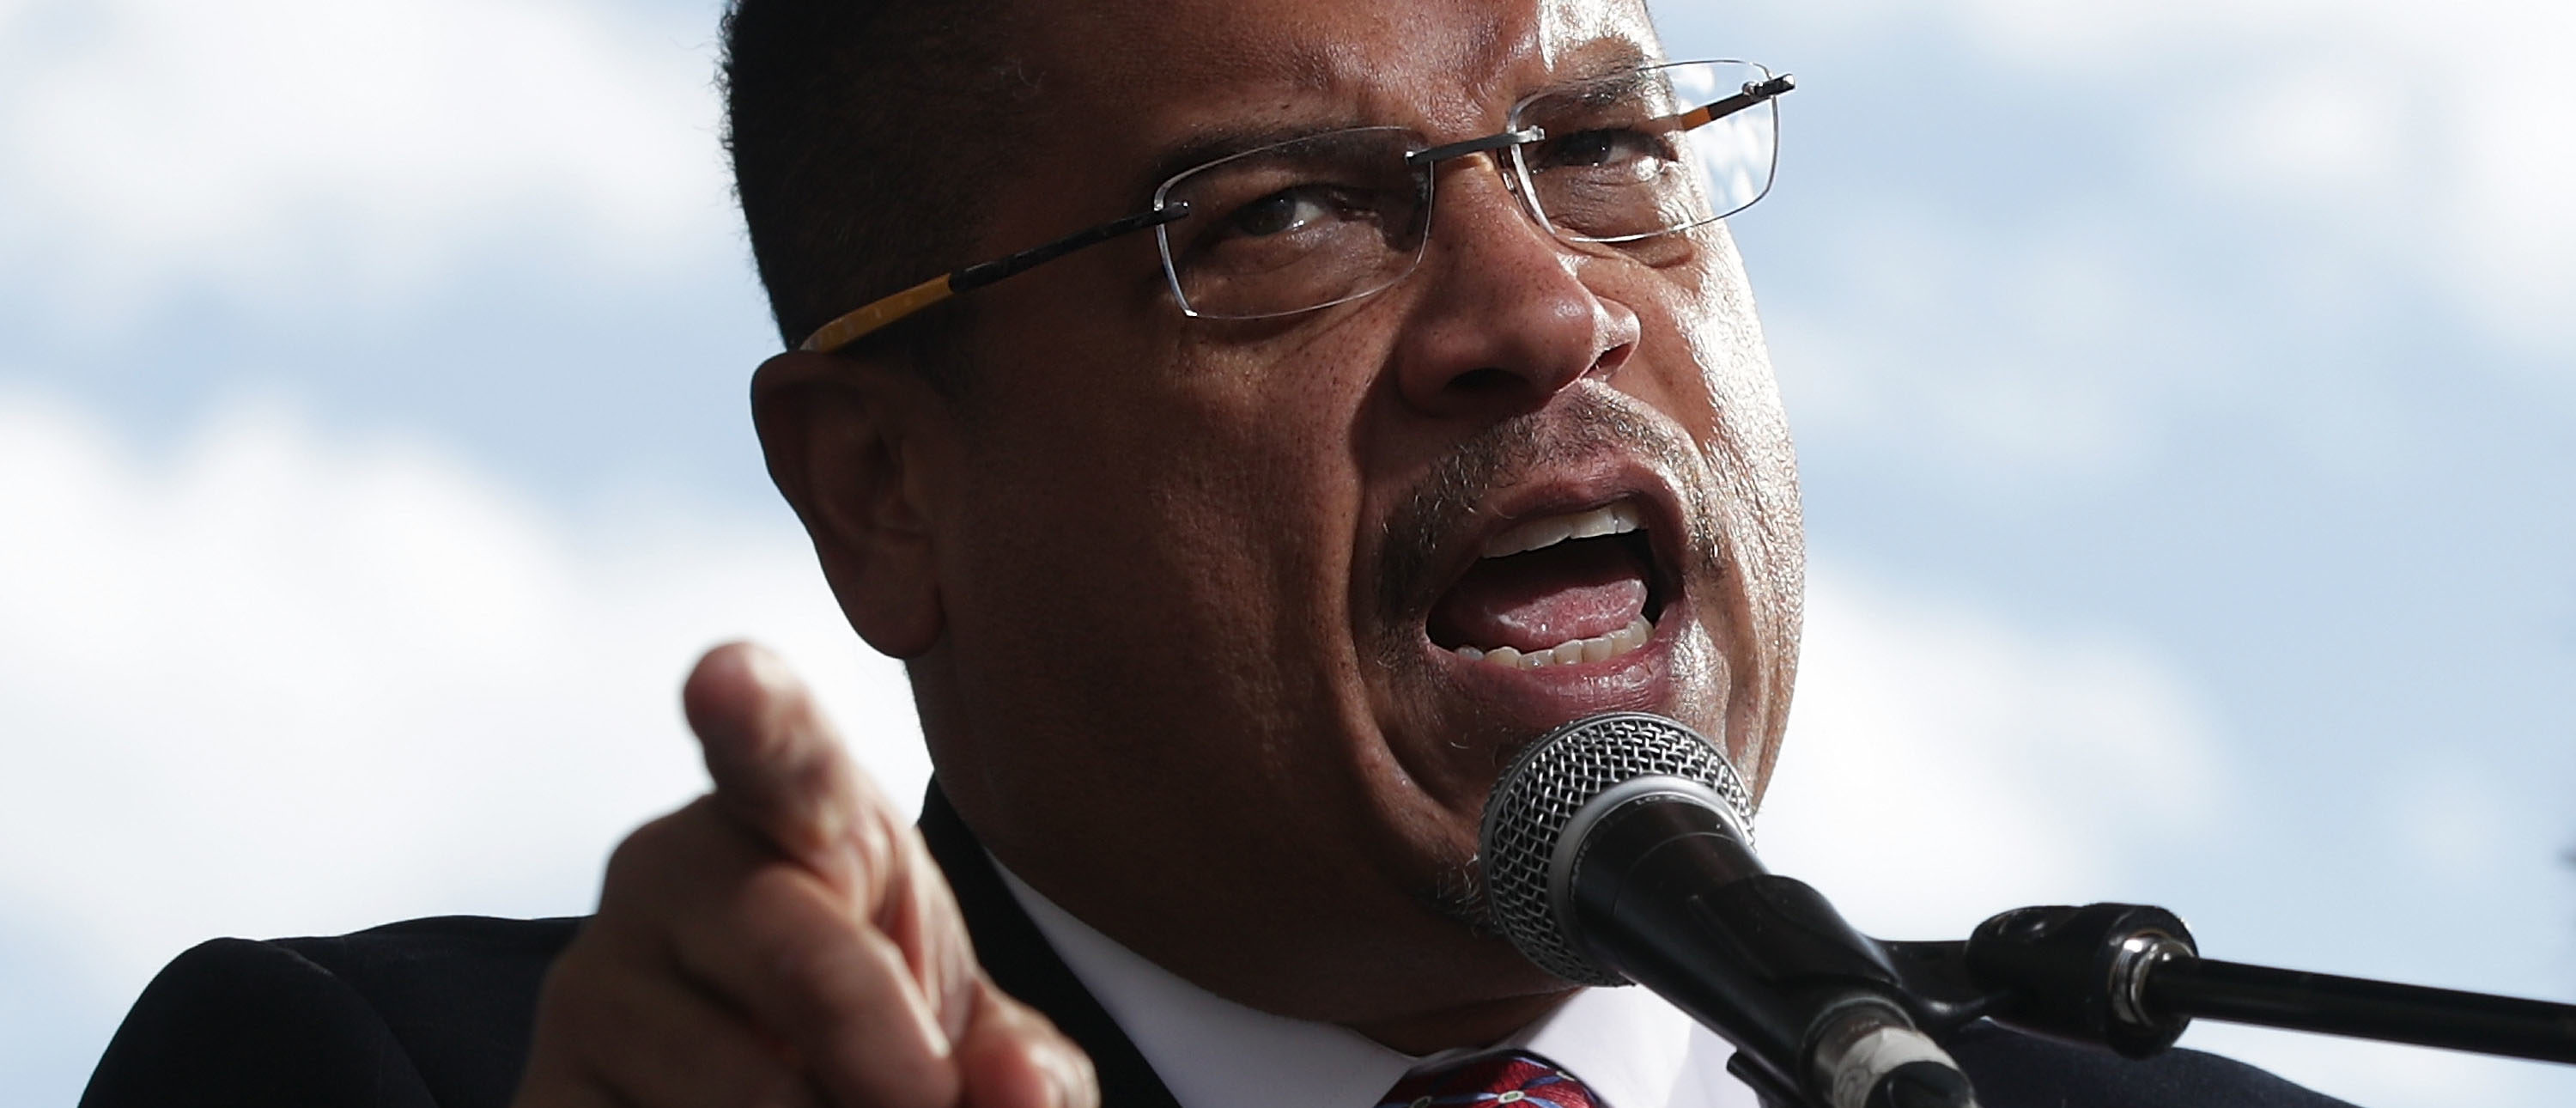 WASHINGTON, DC - DECEMBER 07: U.S. Rep. Keith Ellison (D-MN) (C) speaks during a rally on jobs December 7, 2016 at Freedom Plaza in Washington, DC. Our Revolution and Good Jobs Nation, the organizer, held a rally to demand good jobs and workers' rights from the incoming President-elect Donald Trump administration. (Photo by Alex Wong/Getty Images)